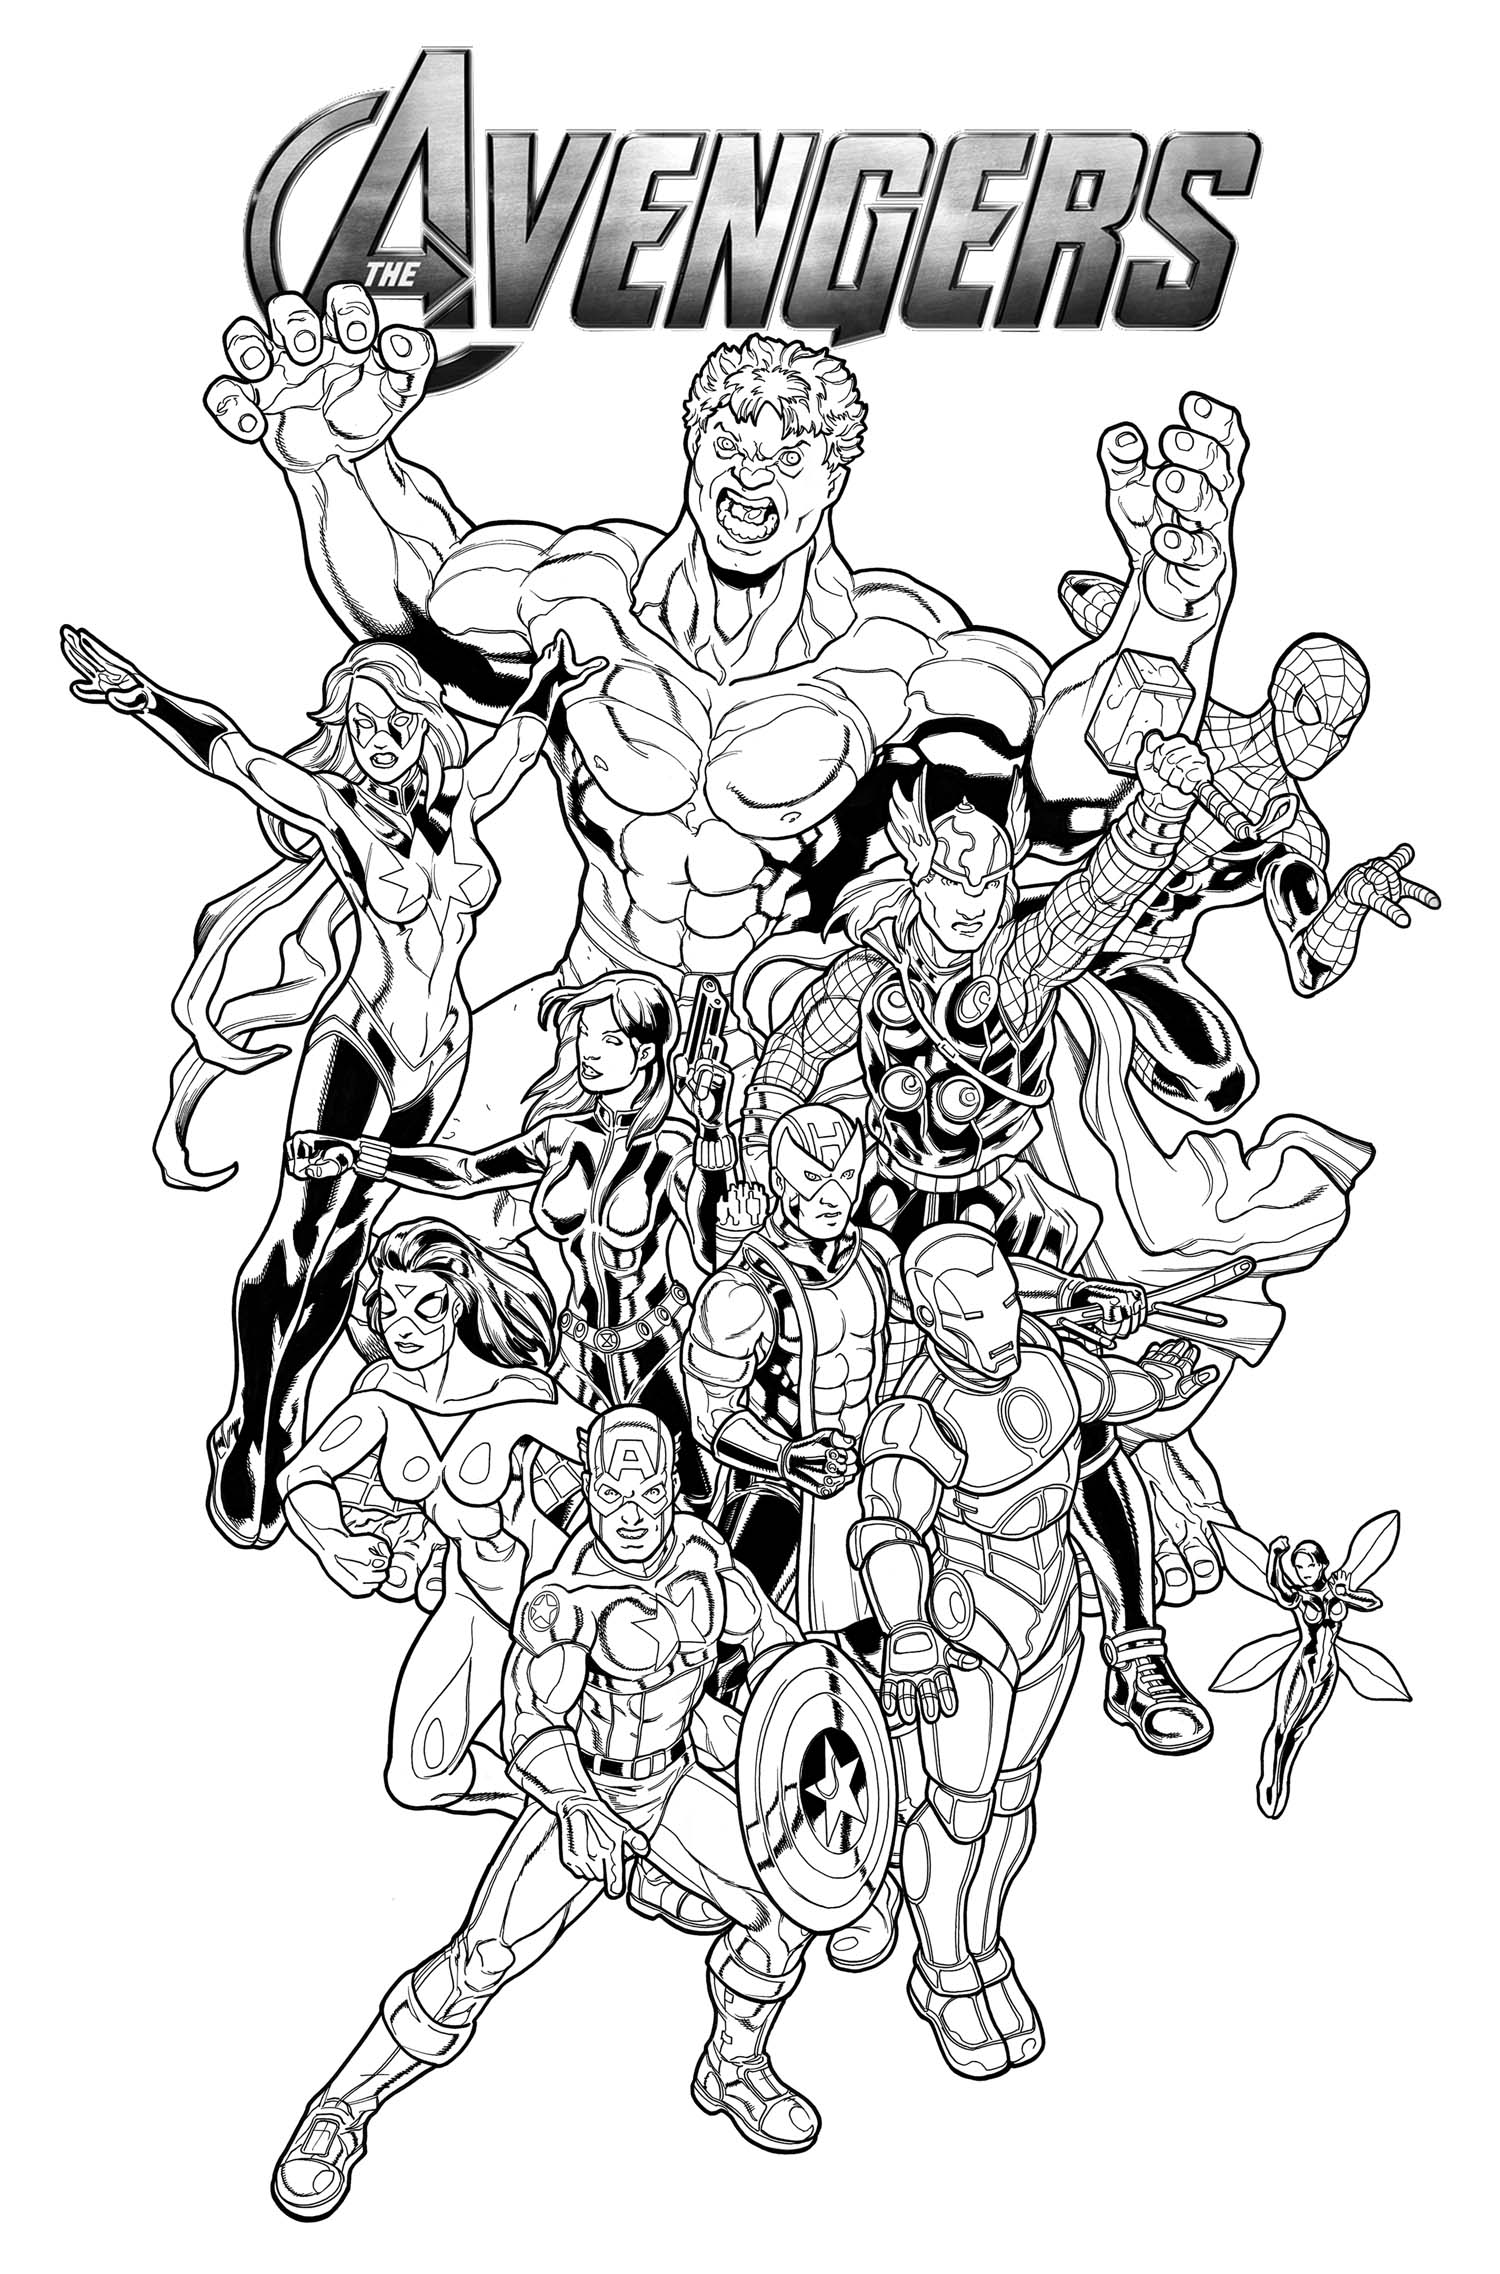 coloring avengers printables coloring pages for kids free images iron man avengers coloring printables avengers